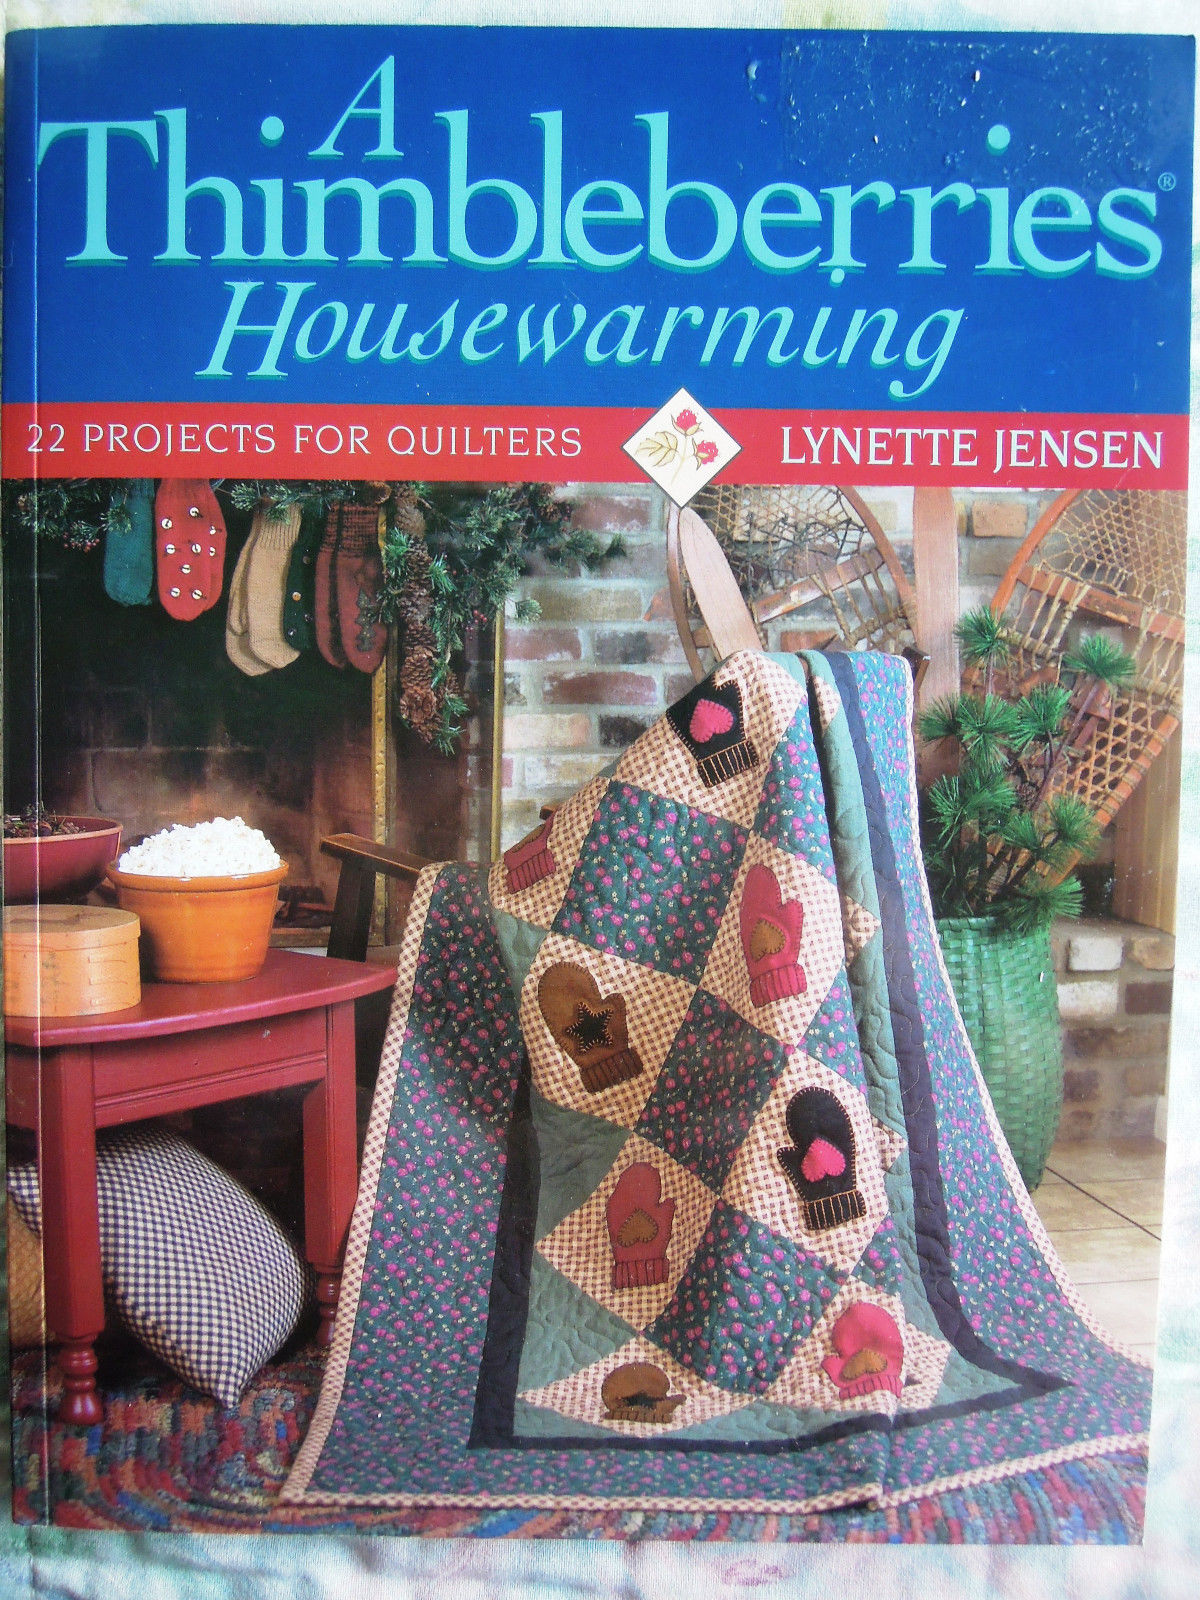 only $2.99 ! A Thimbleberries Housewarming (click!)